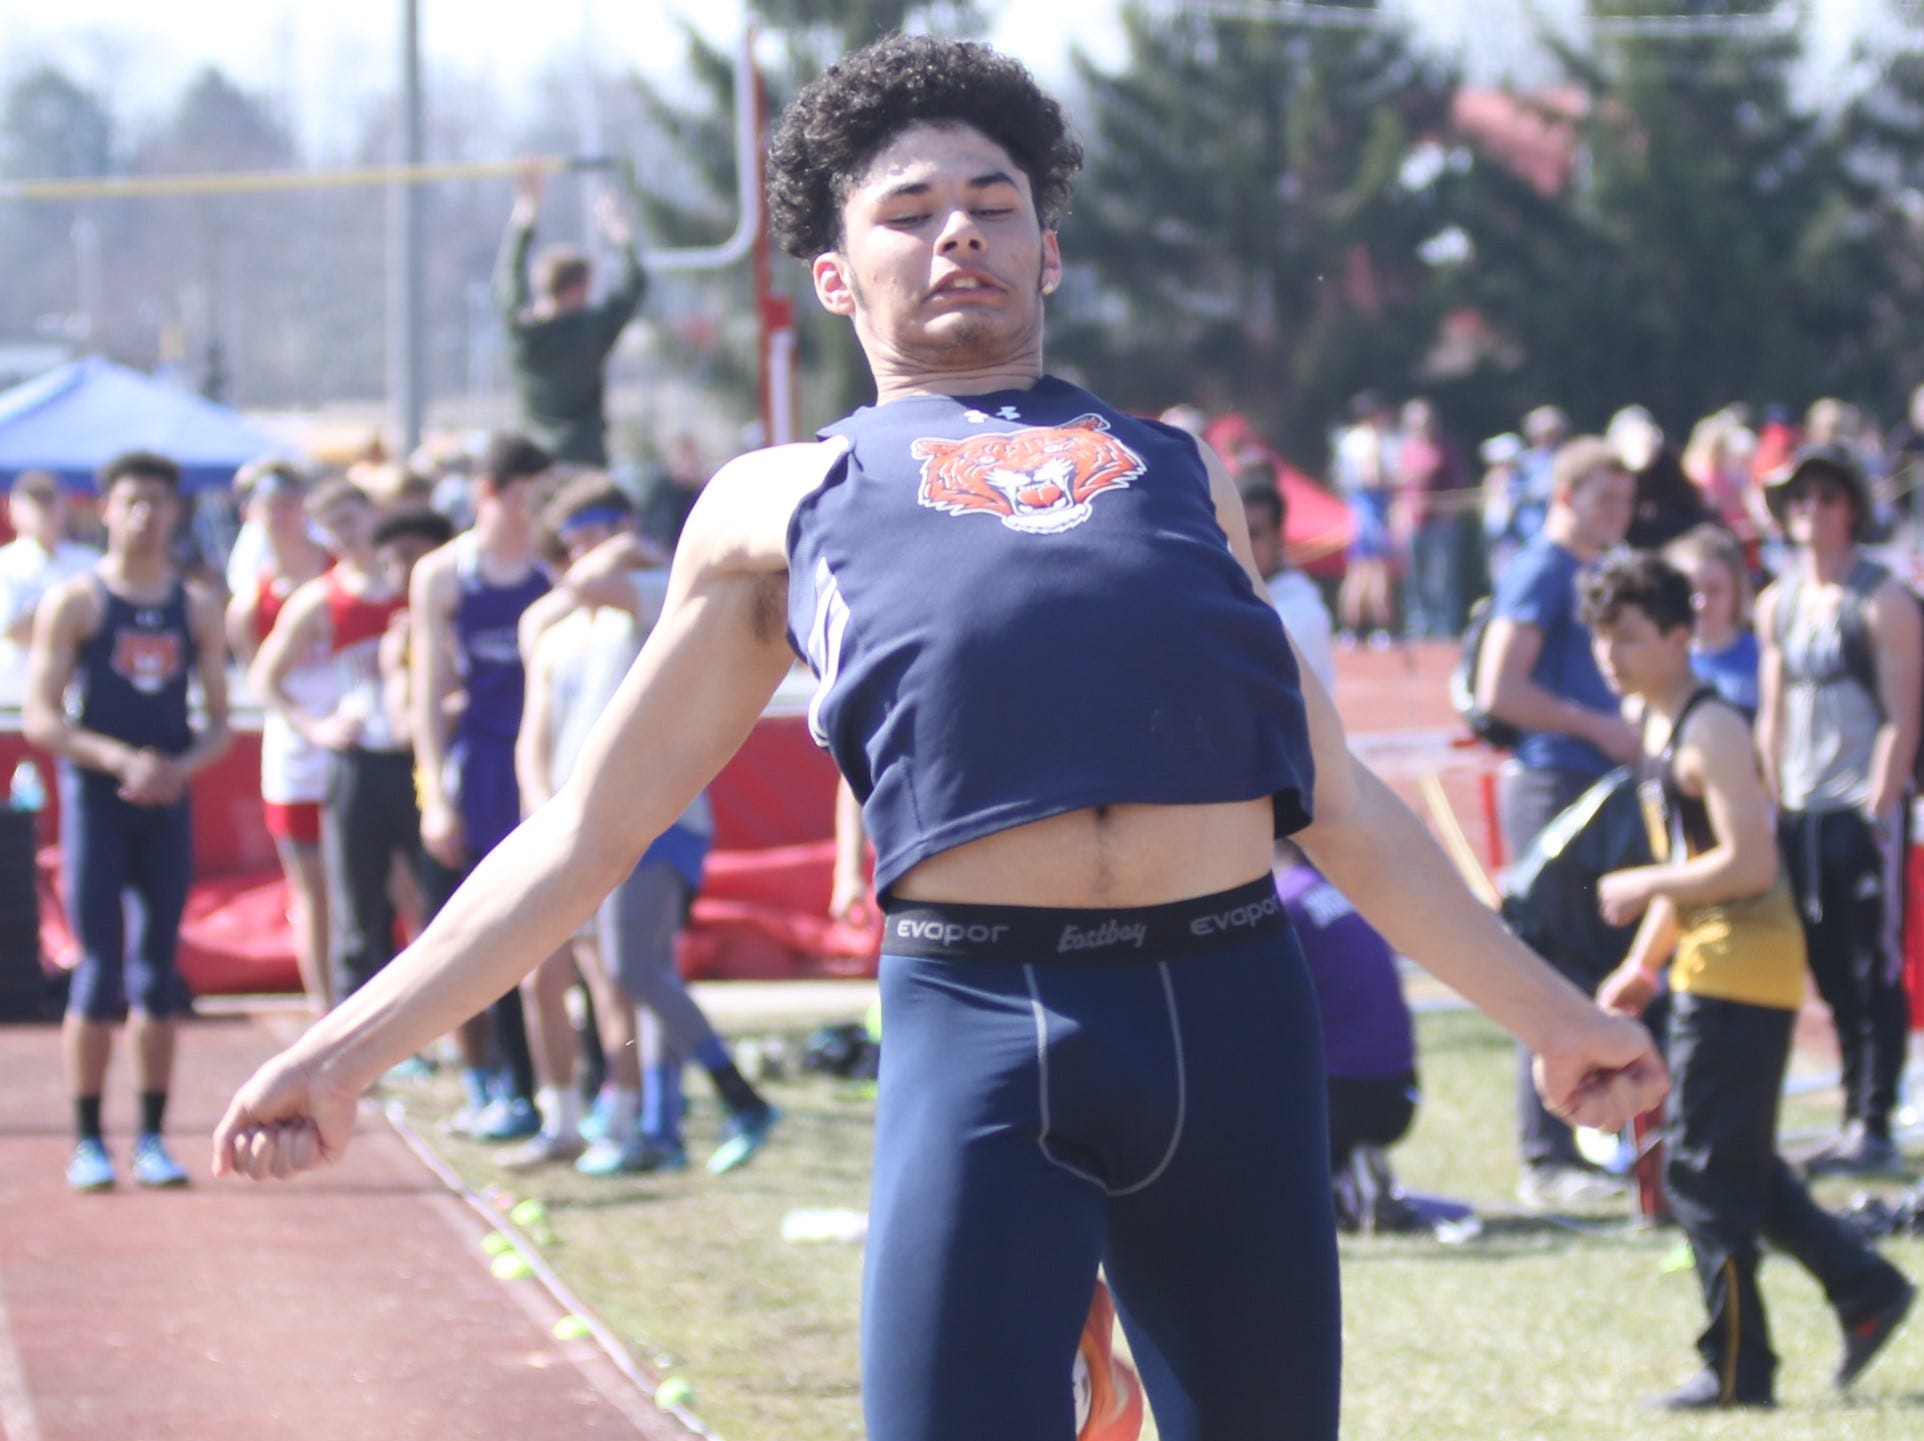 GALLERY: Shelby Track and Field Invitational